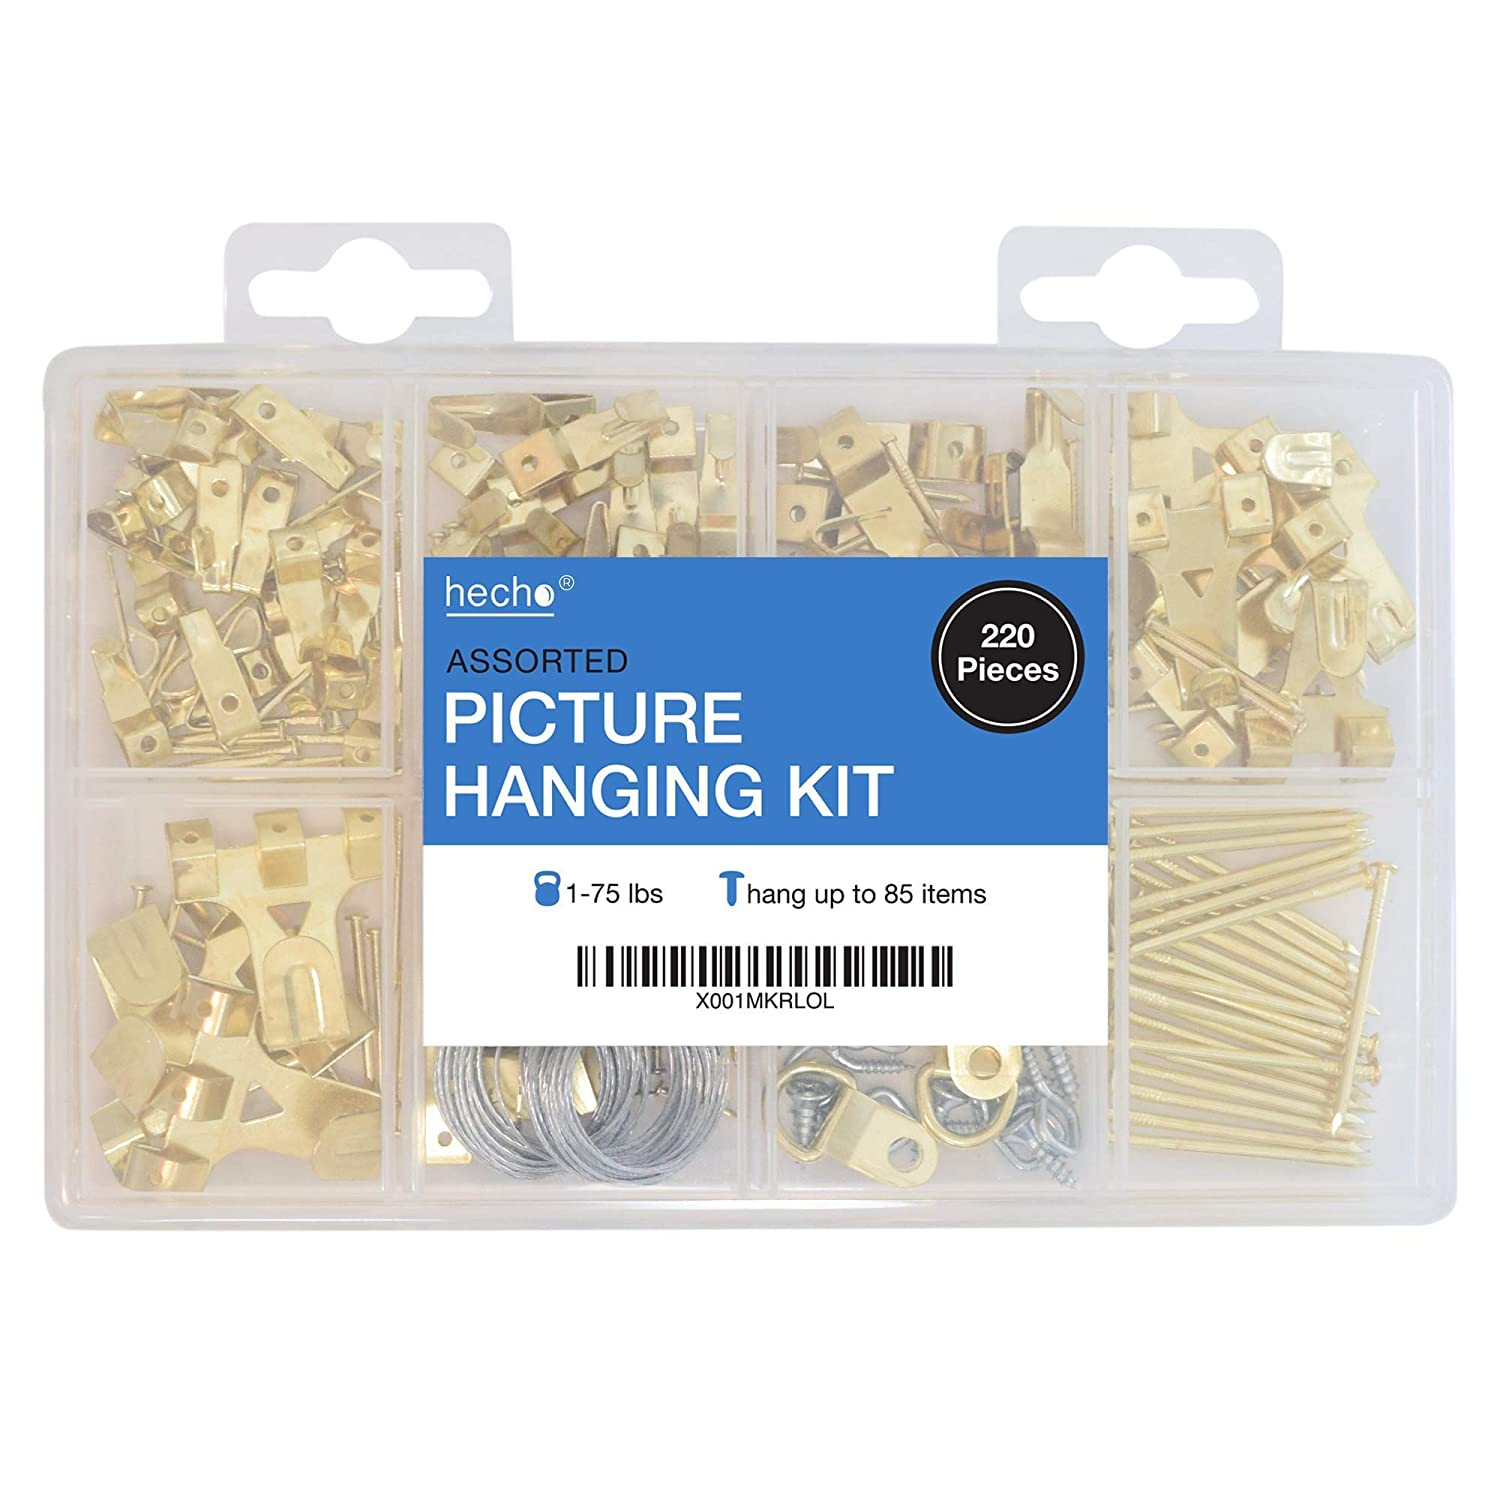 orted Picture Hanging Kit | 220 Piece ortment with Wire, Picture Hangers, on